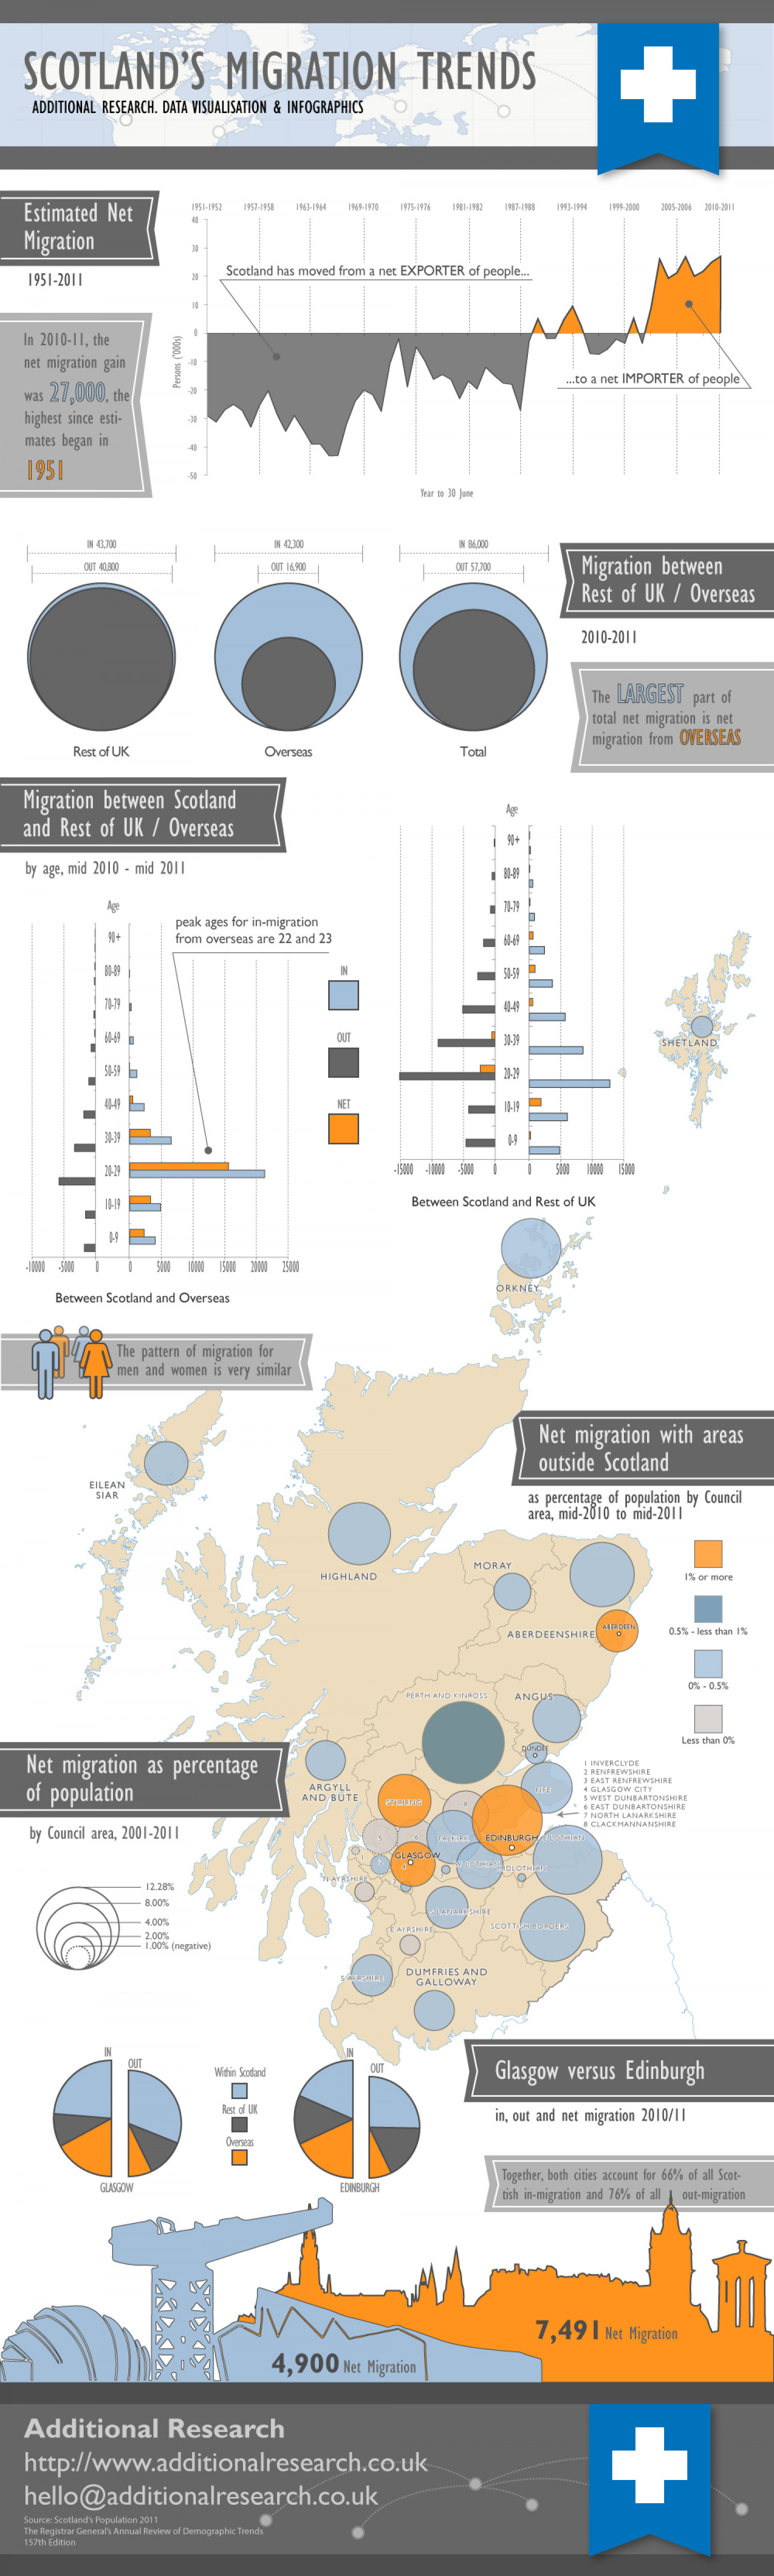 Scotland's Migration Trends Infographic